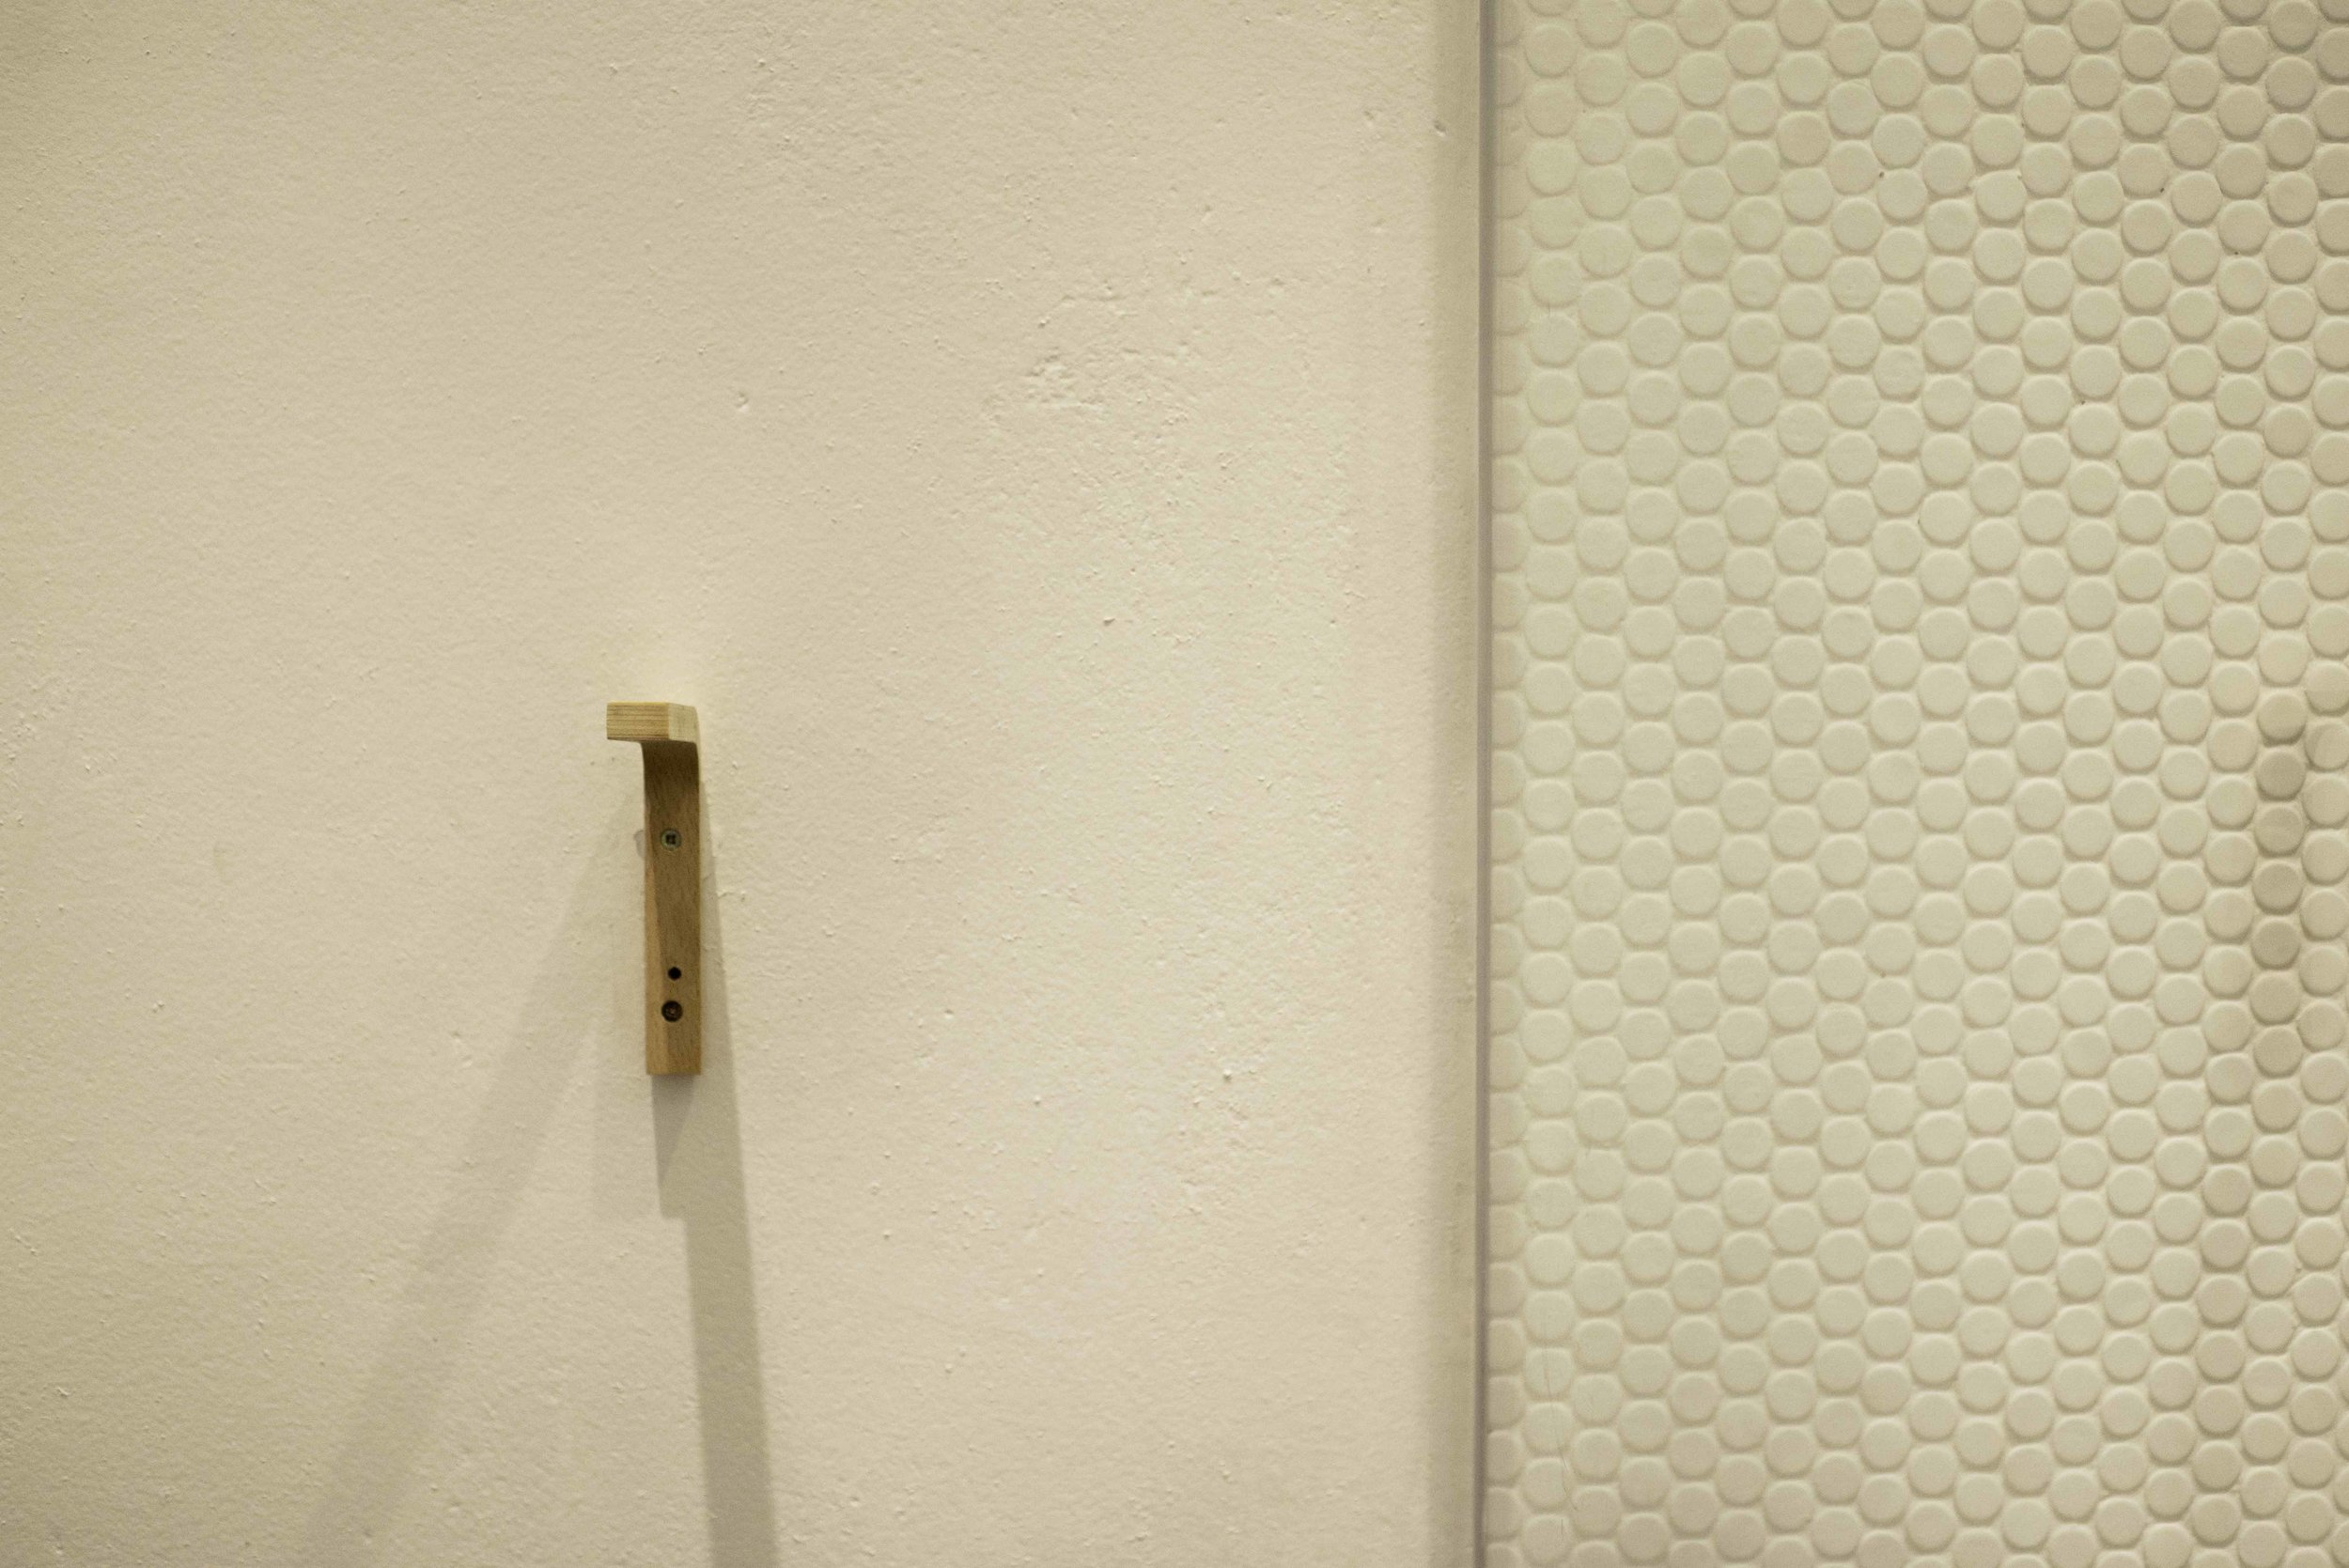 Toilet roll holder and shower wall detail